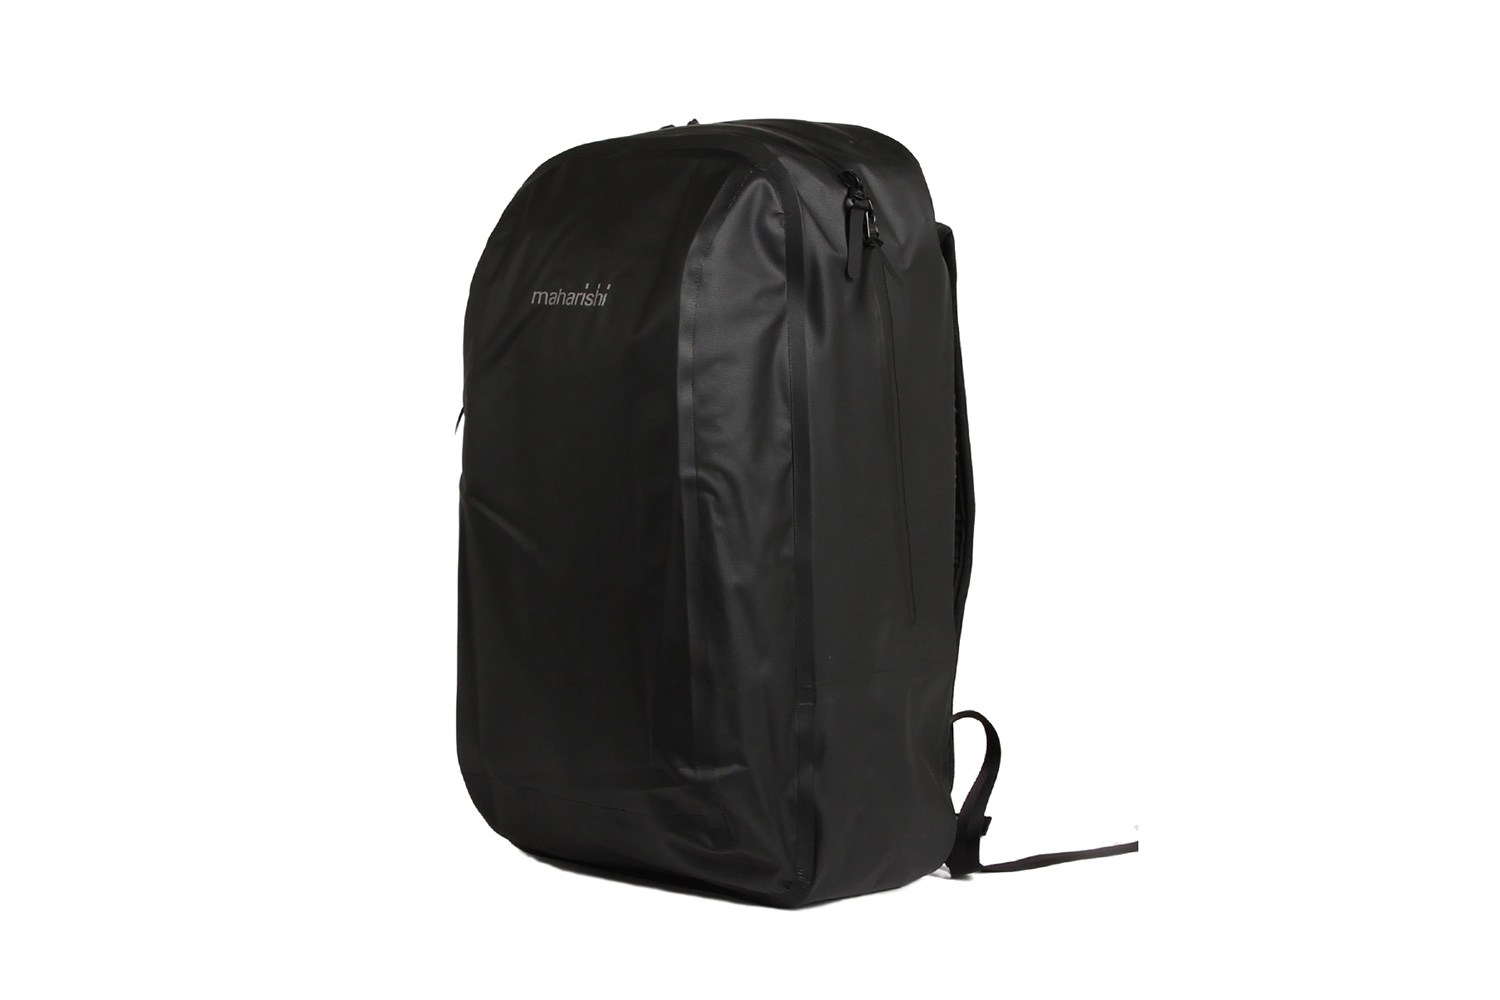 maharishi 2015 Spring/Summer 9989 Day Backpack